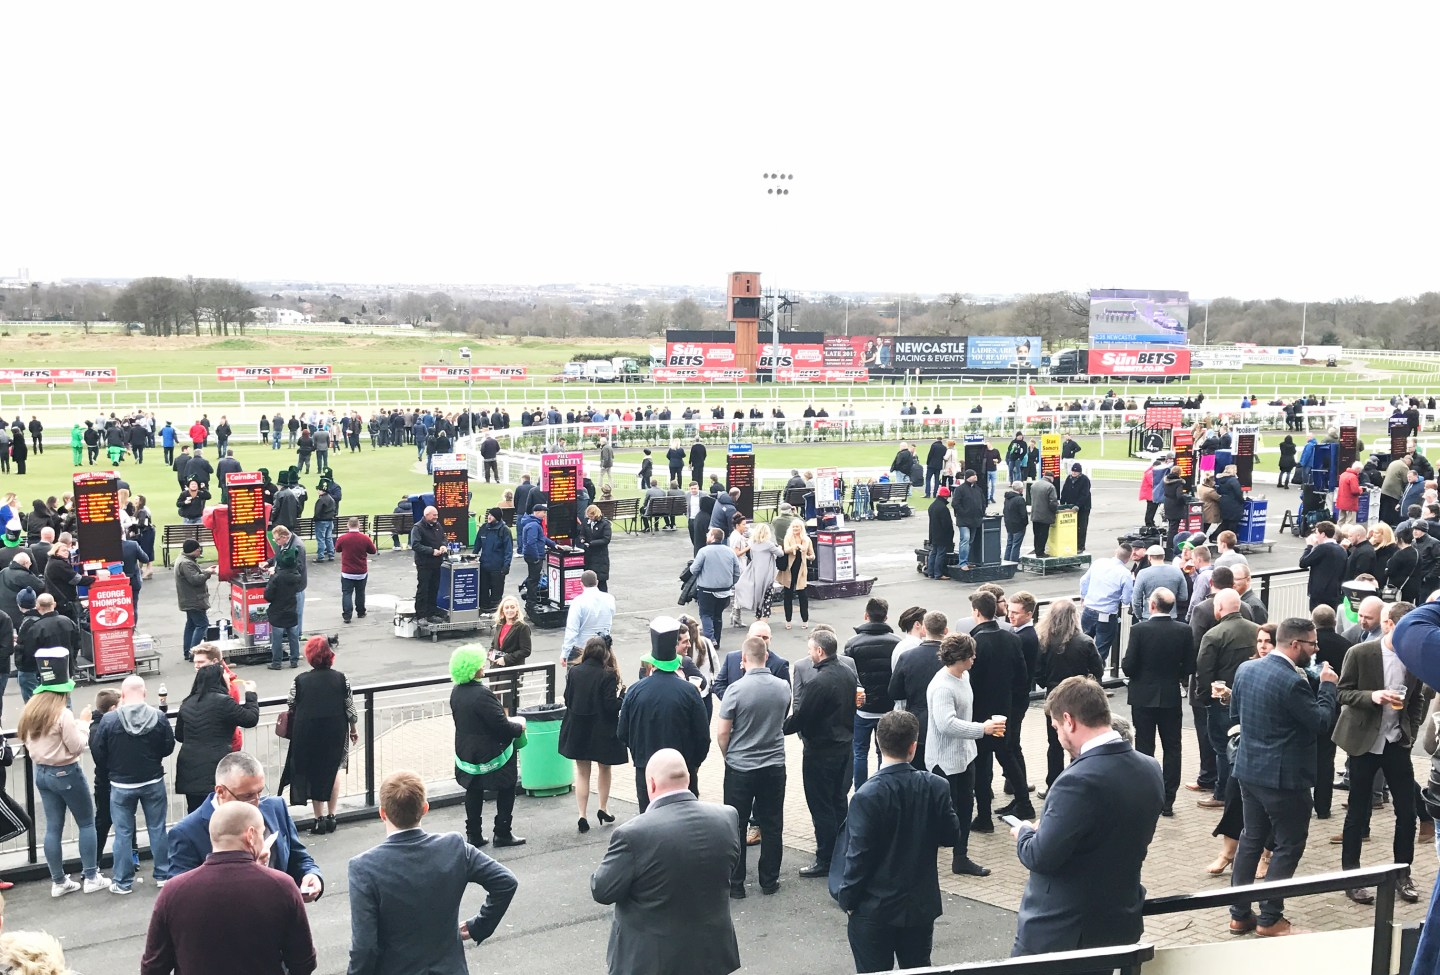 A day at the races... ladbrokes